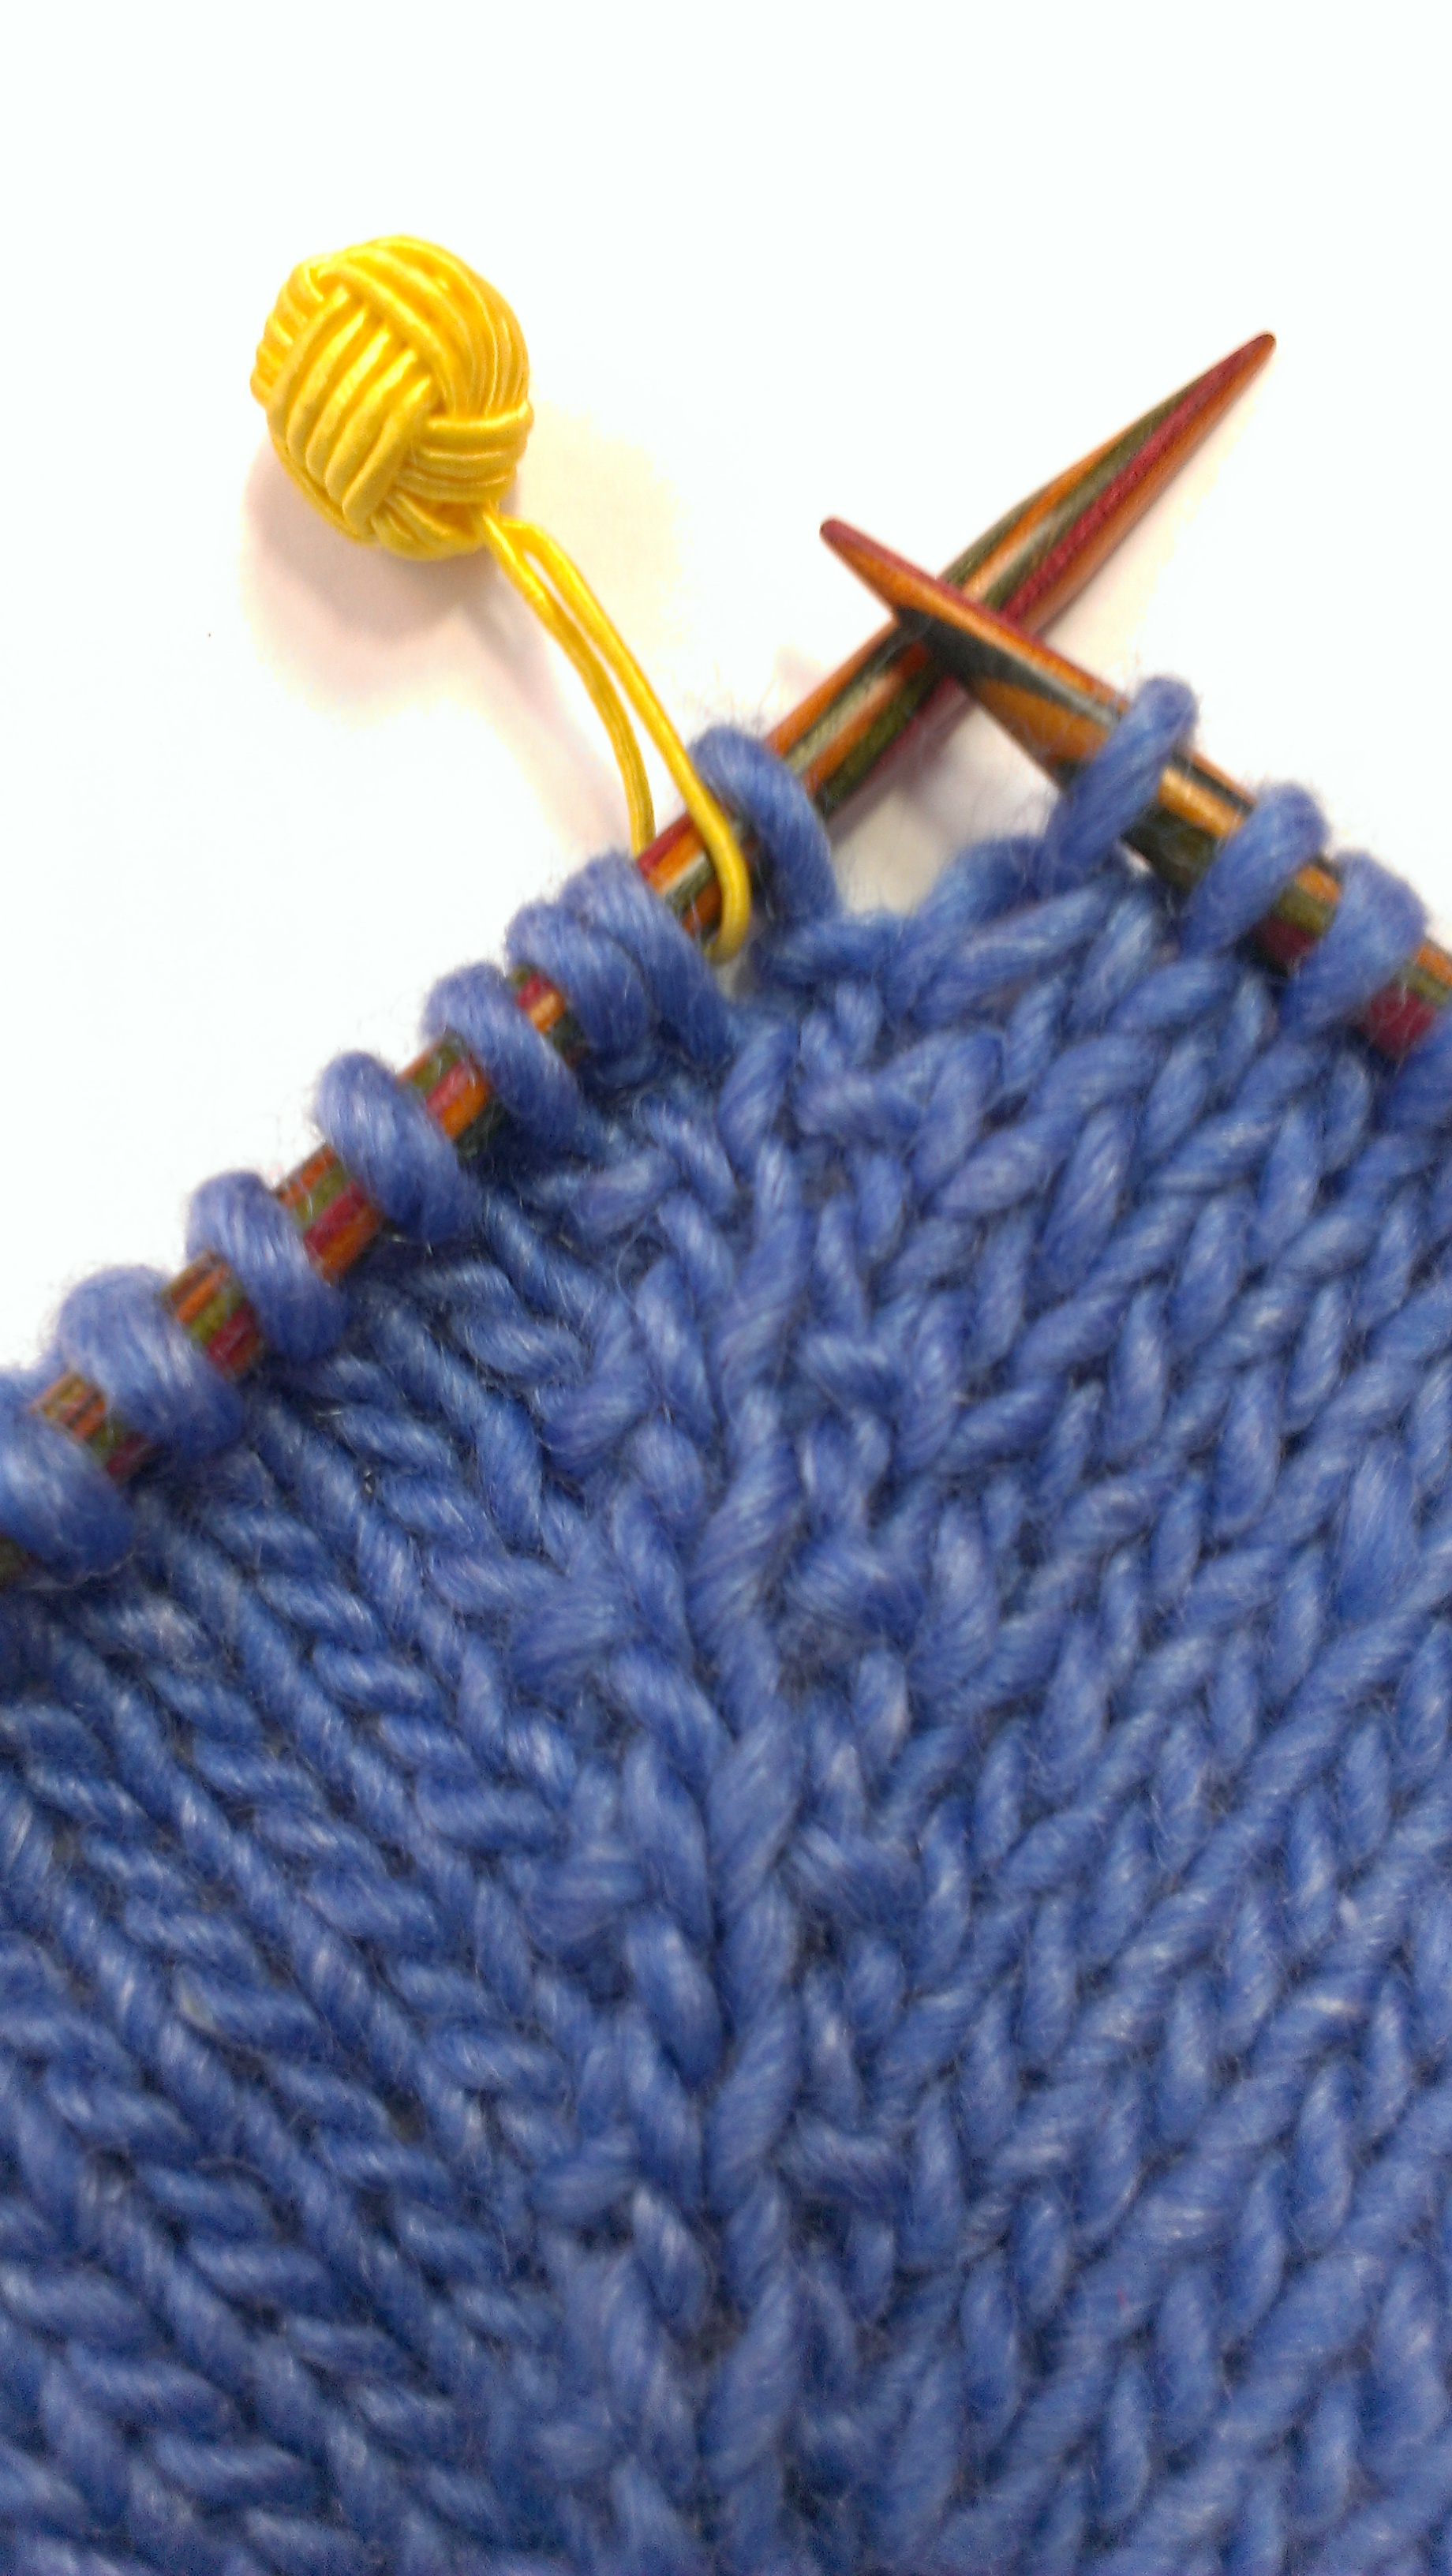 Knit Kfb : To kfb or not that is the question… measured threads